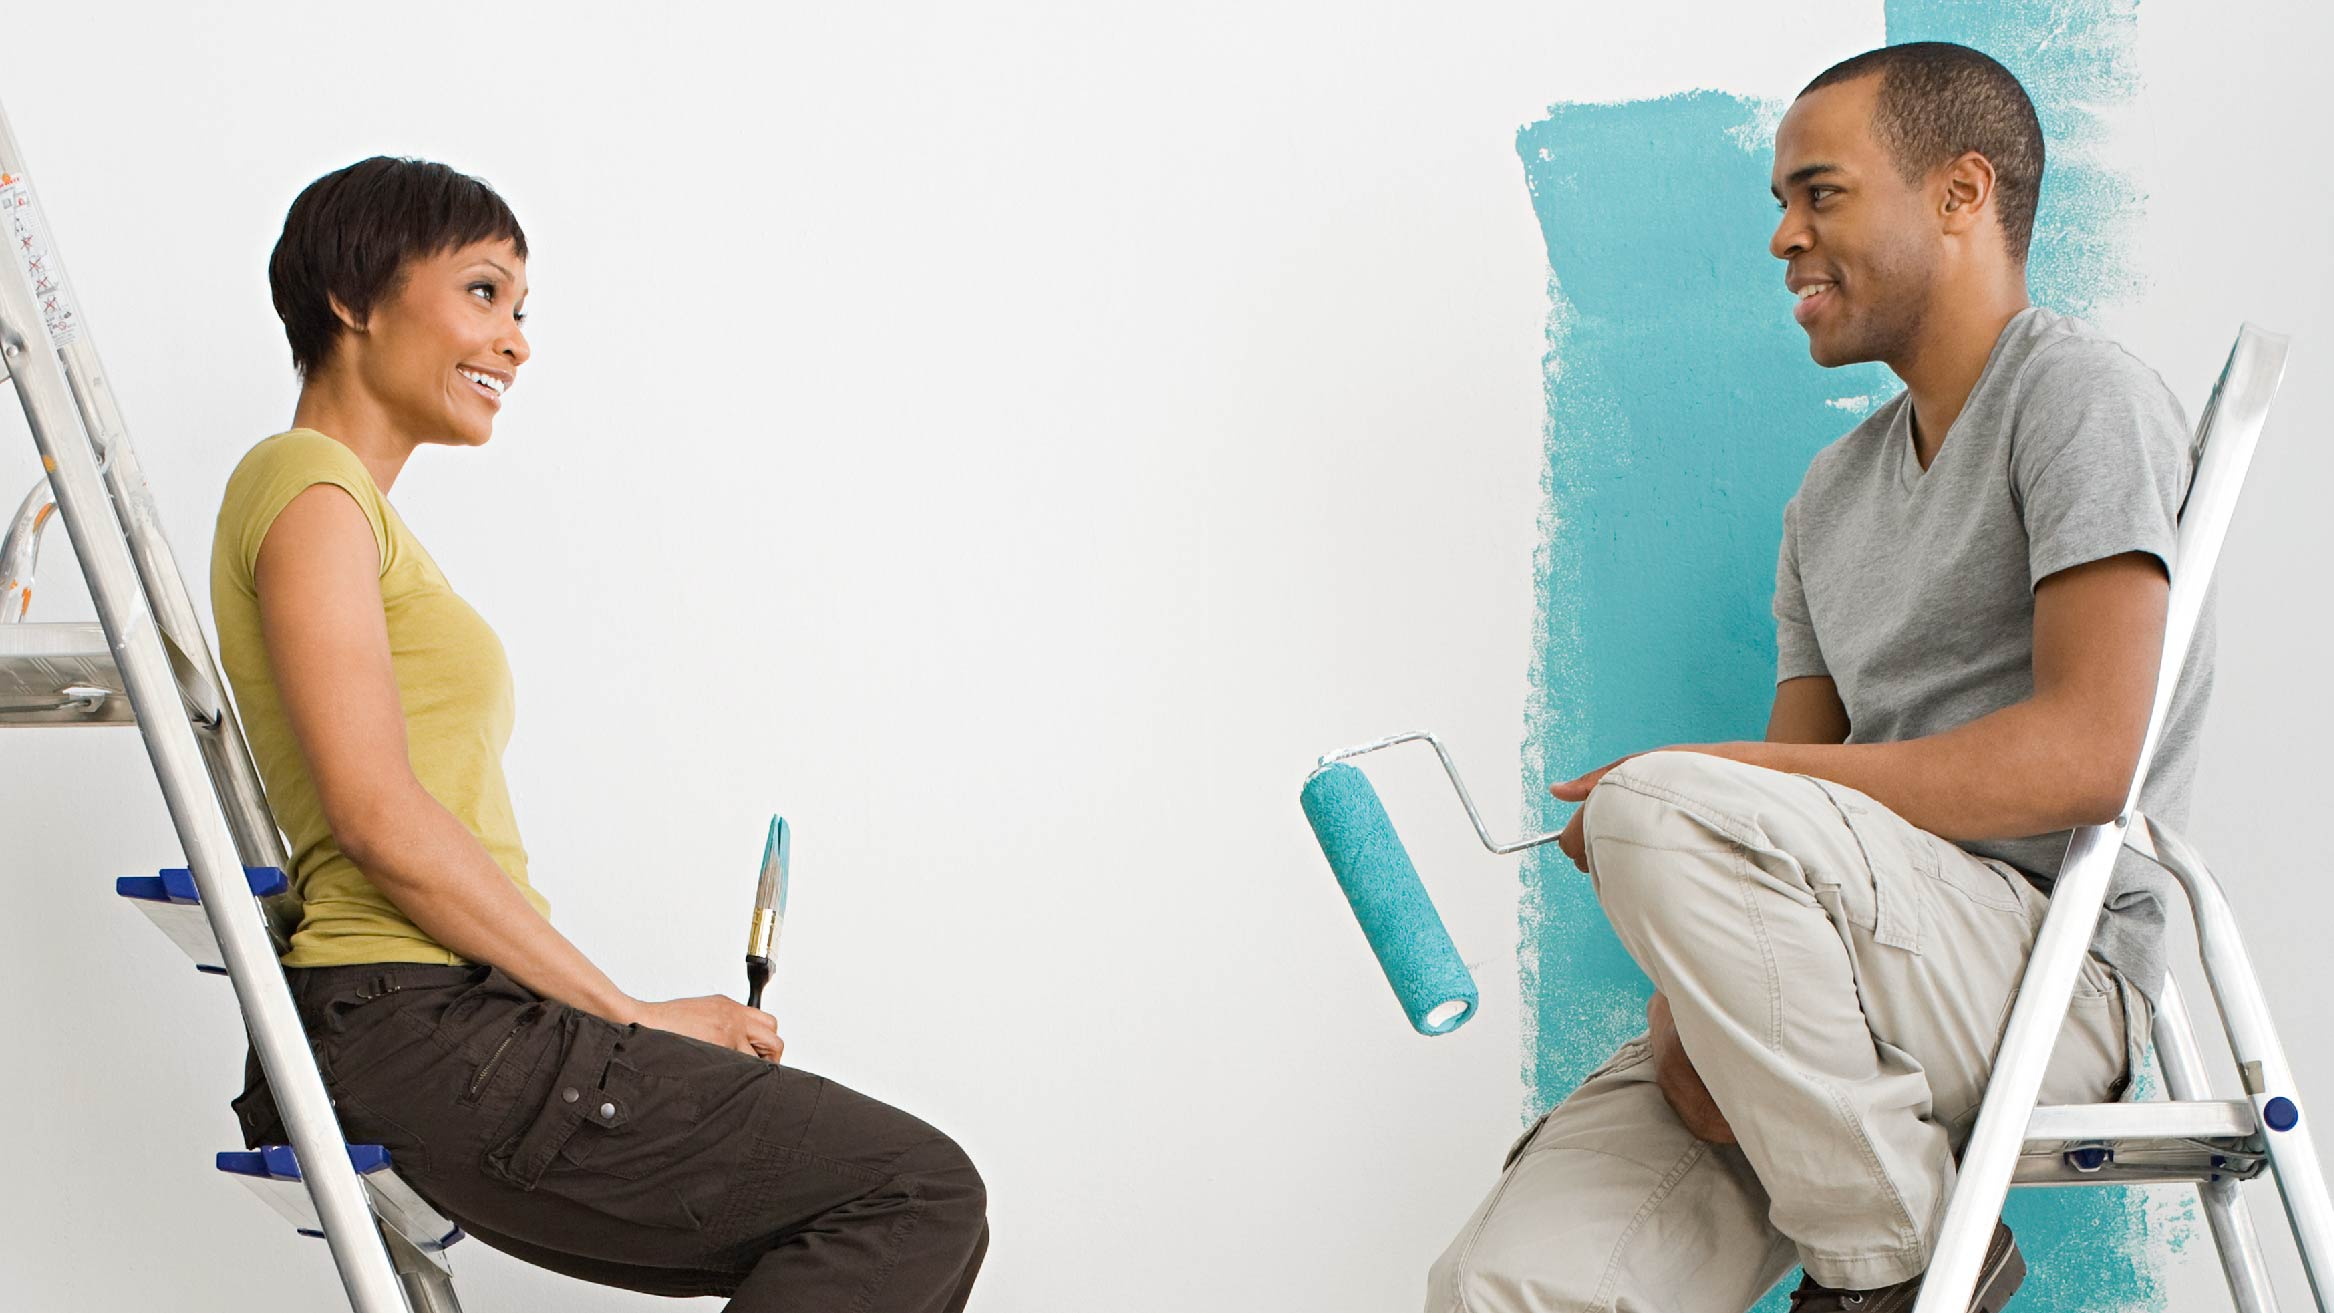 A couple sitting on ladders and taking a break from painting the wall.